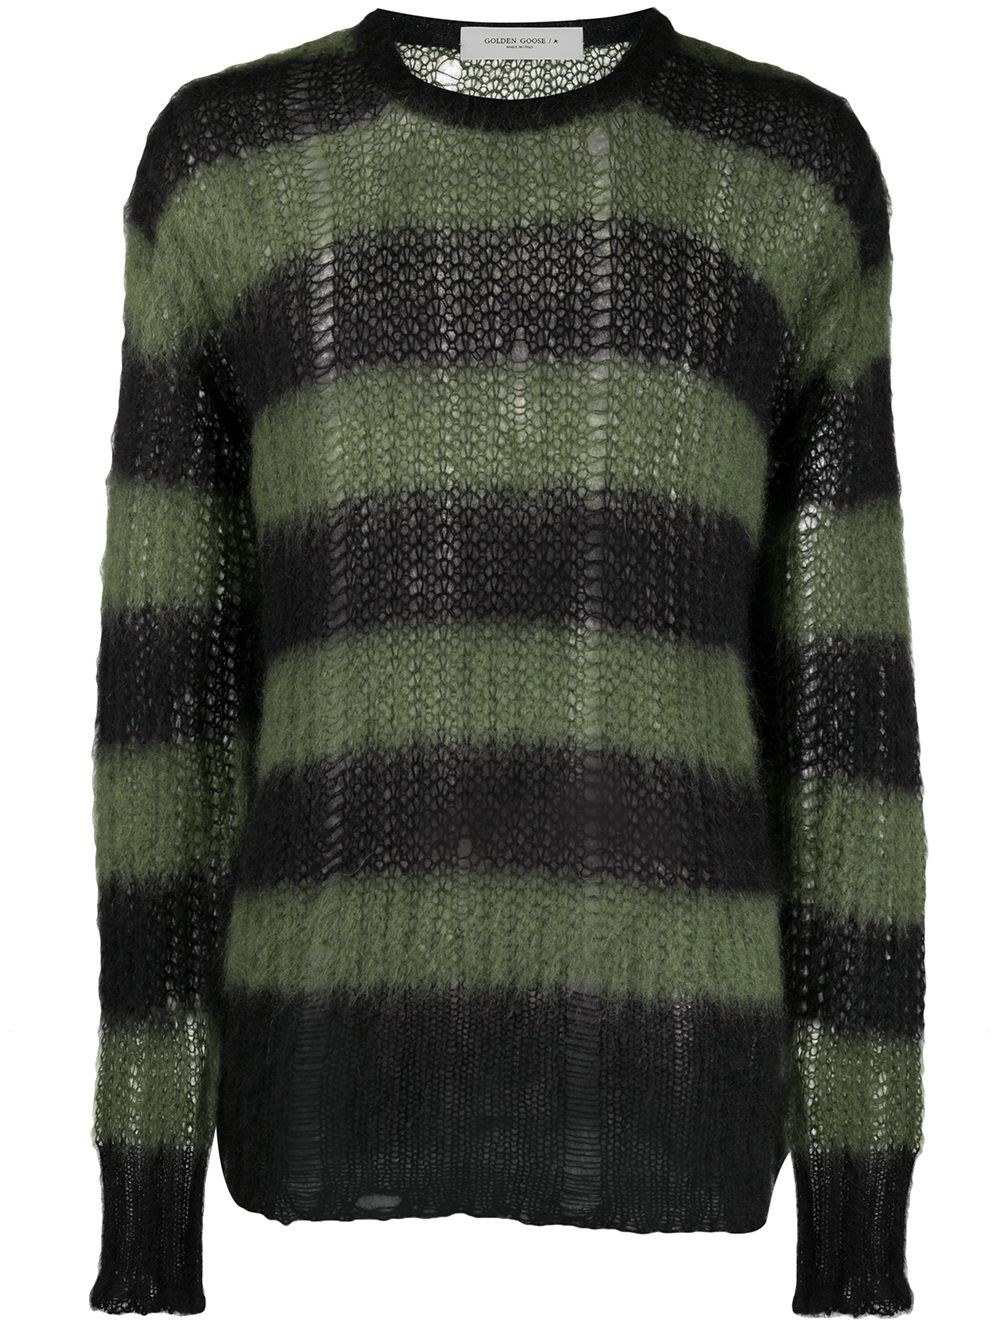 GOLDEN GOOSE DELUXE BRAND Destroyed Effect Knit Sweater